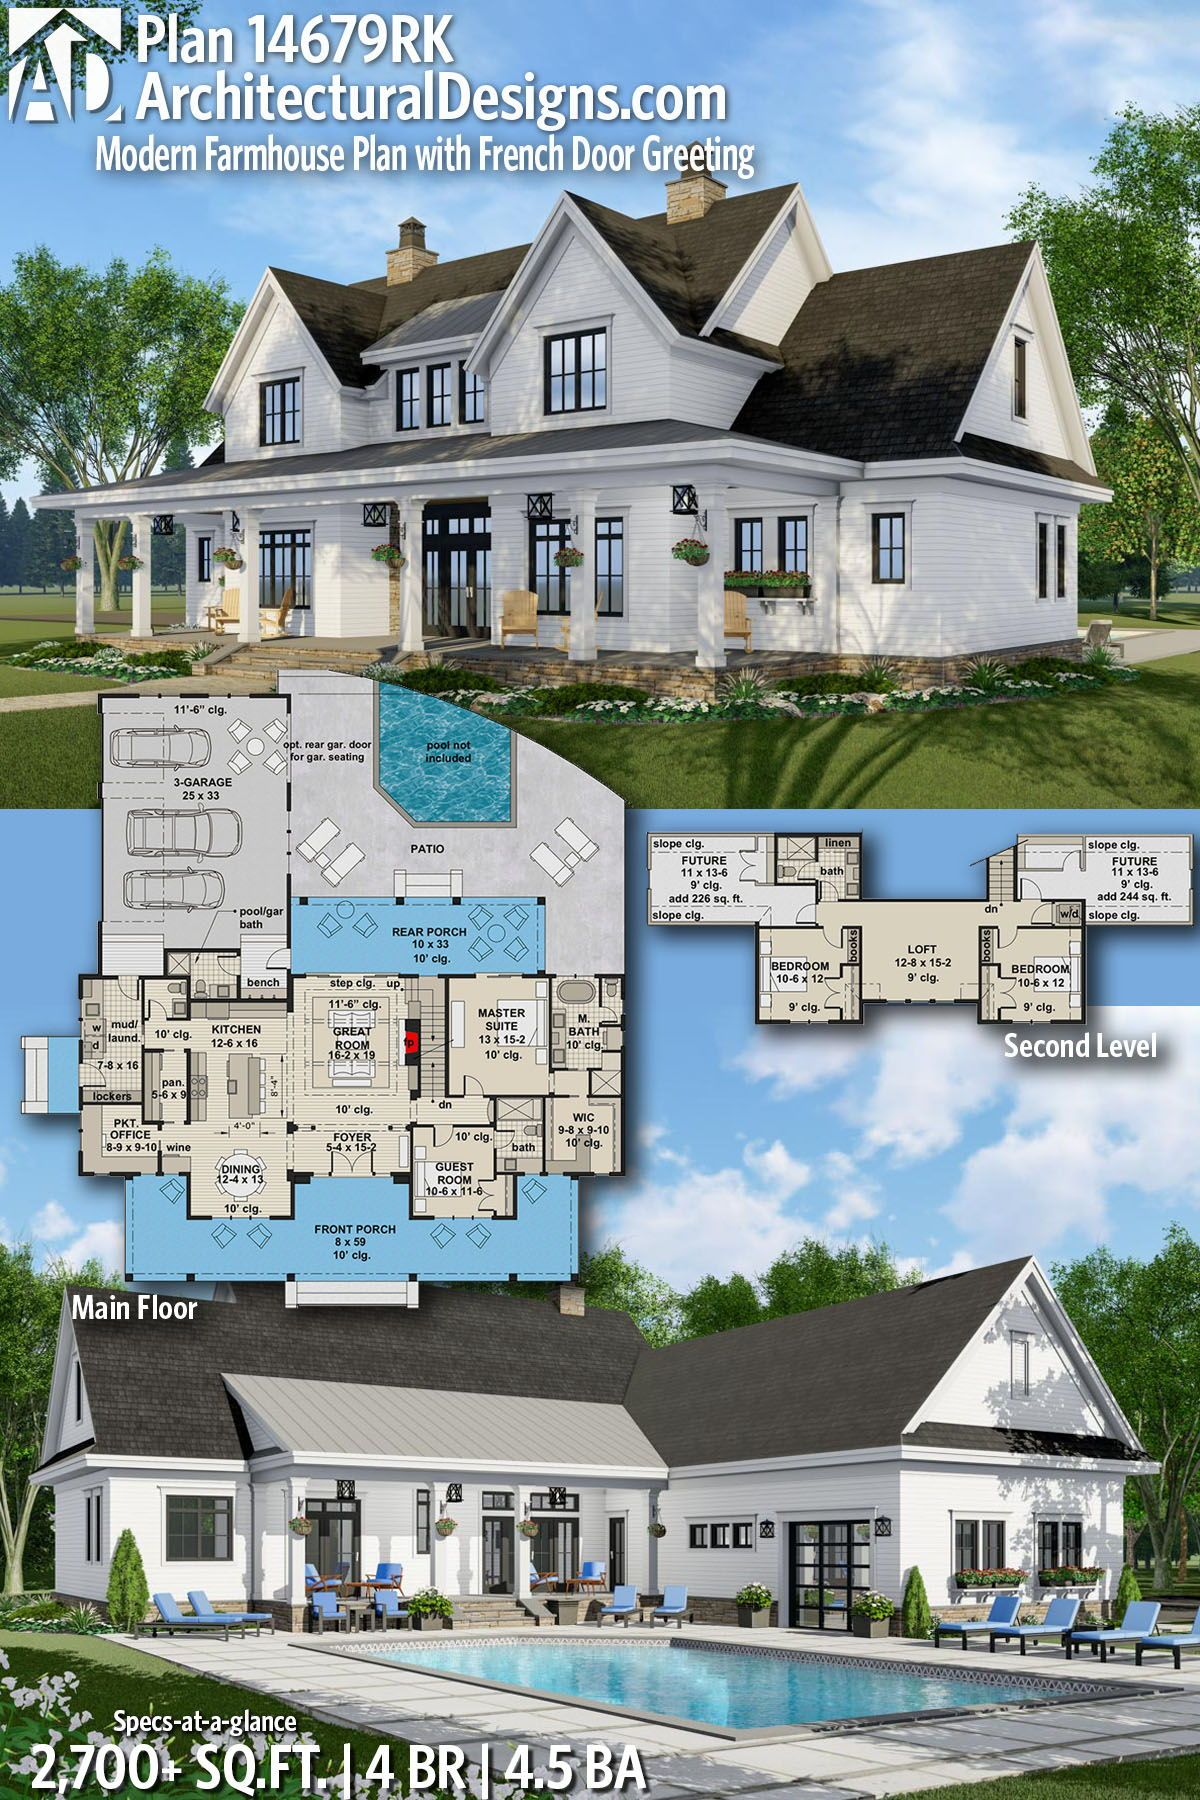 Architectural Designs Plan 14679rk Modern Farmhouse Plan With French Door Greeting In